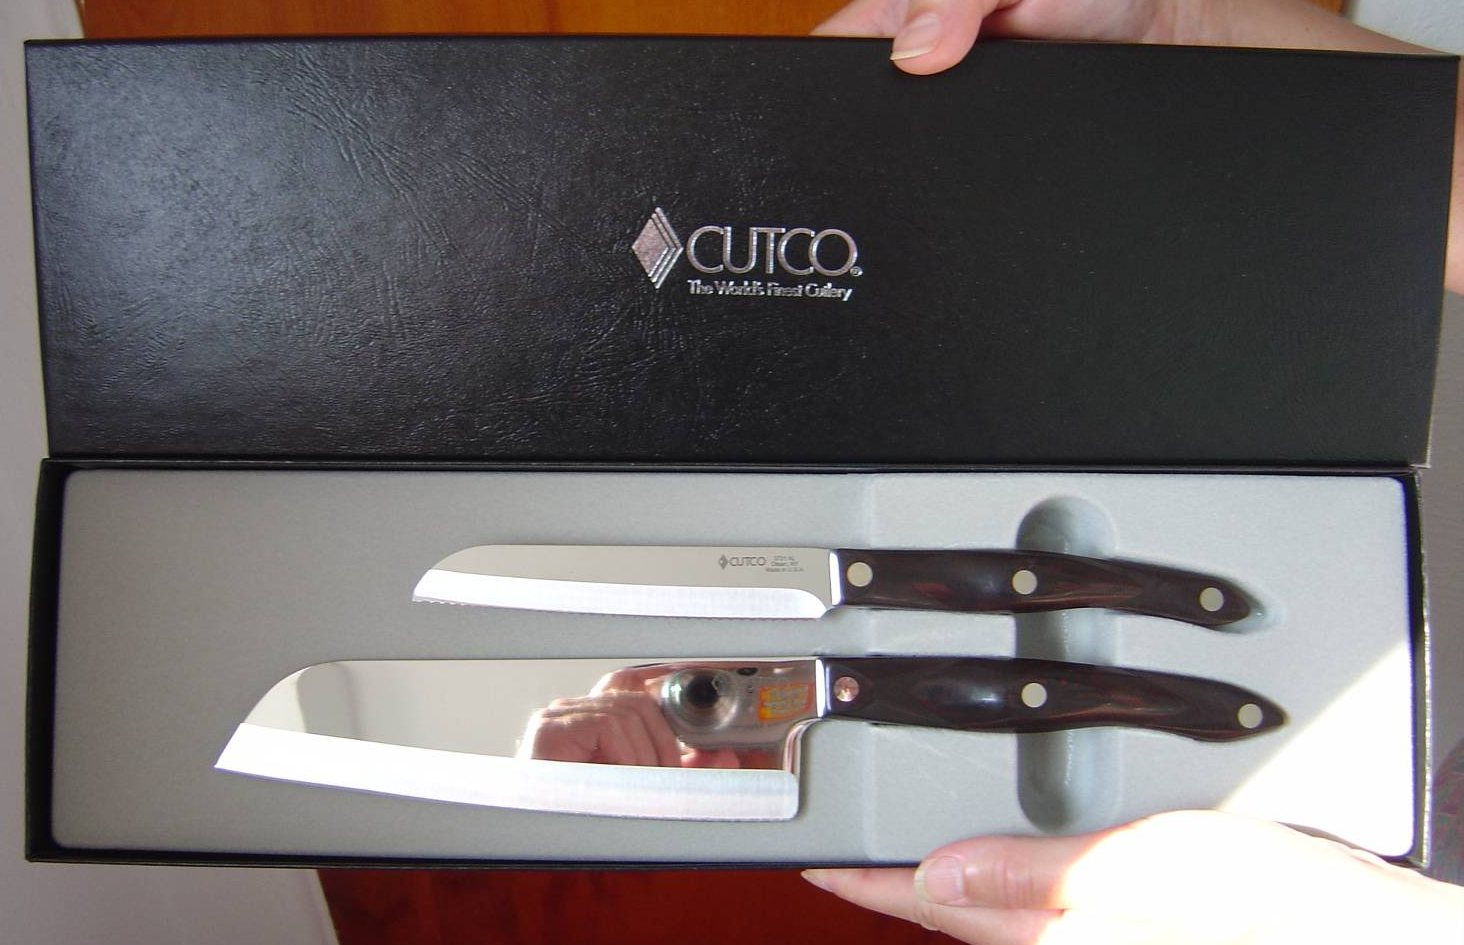 CUTCO Cutlery AMERICAN MADE Santoku-Style Cook's Combo Set